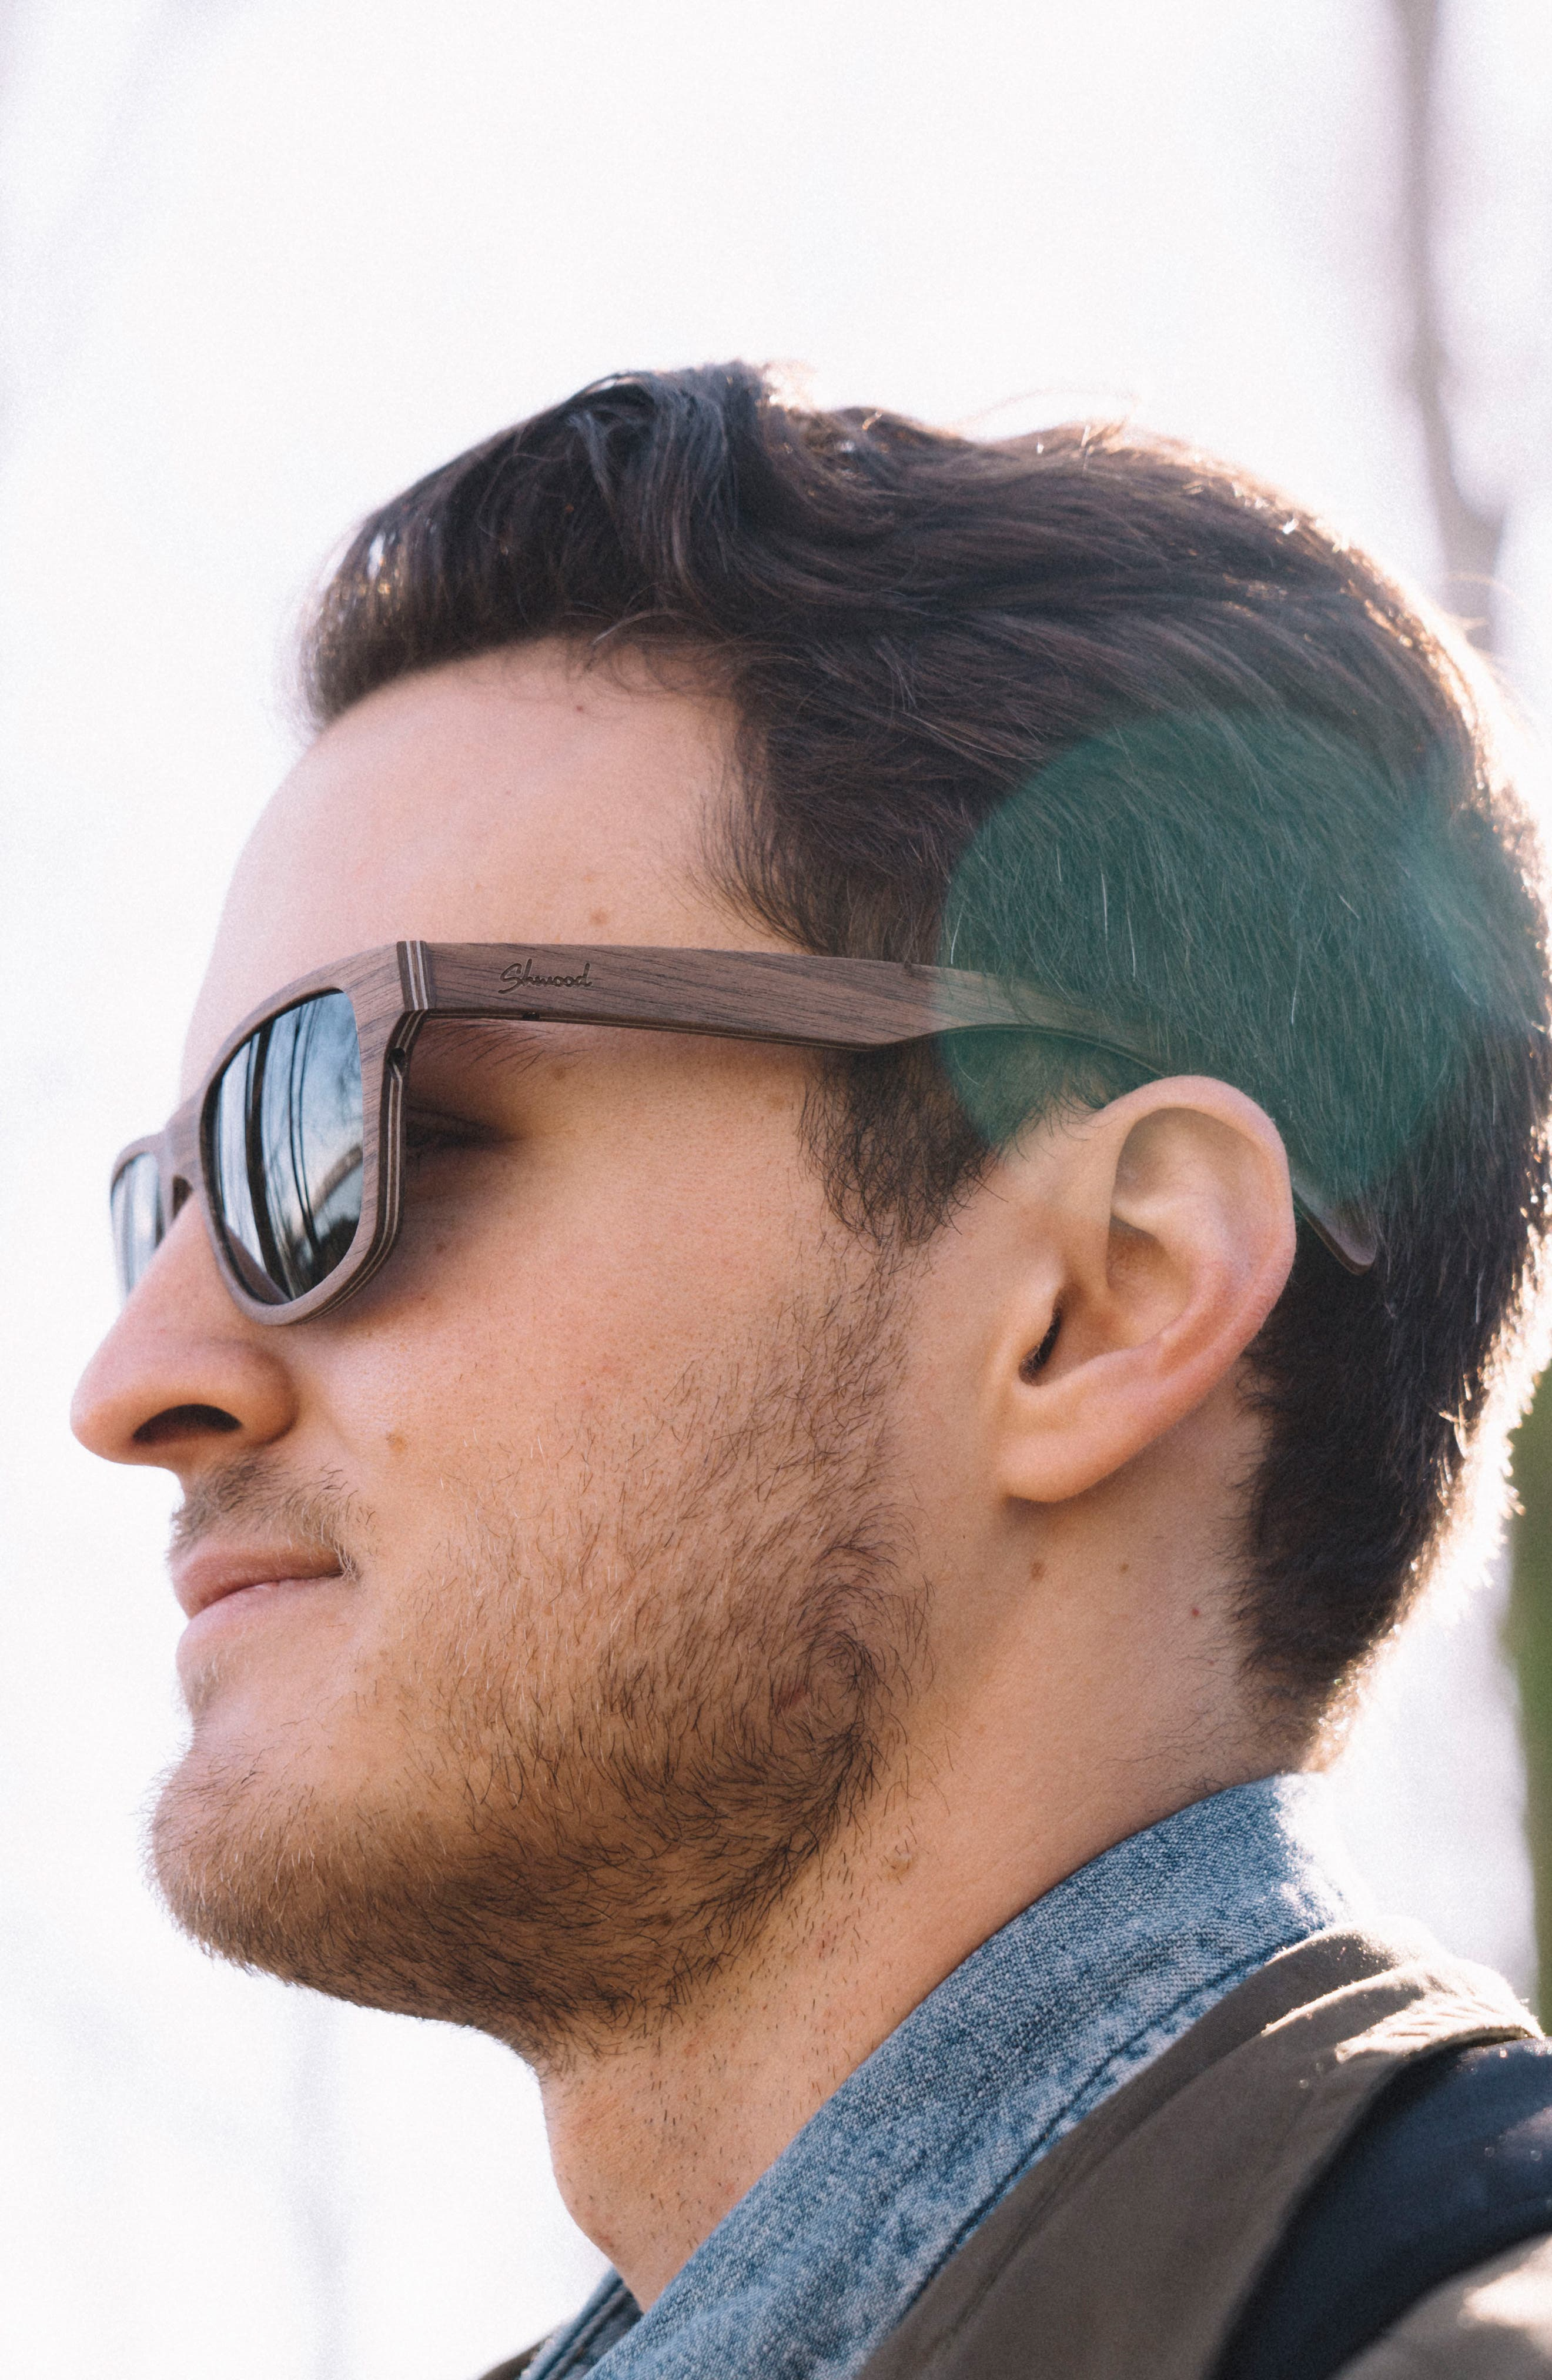 'Canby' 54mm Wood Sunglasses,                             Alternate thumbnail 2, color,                             210